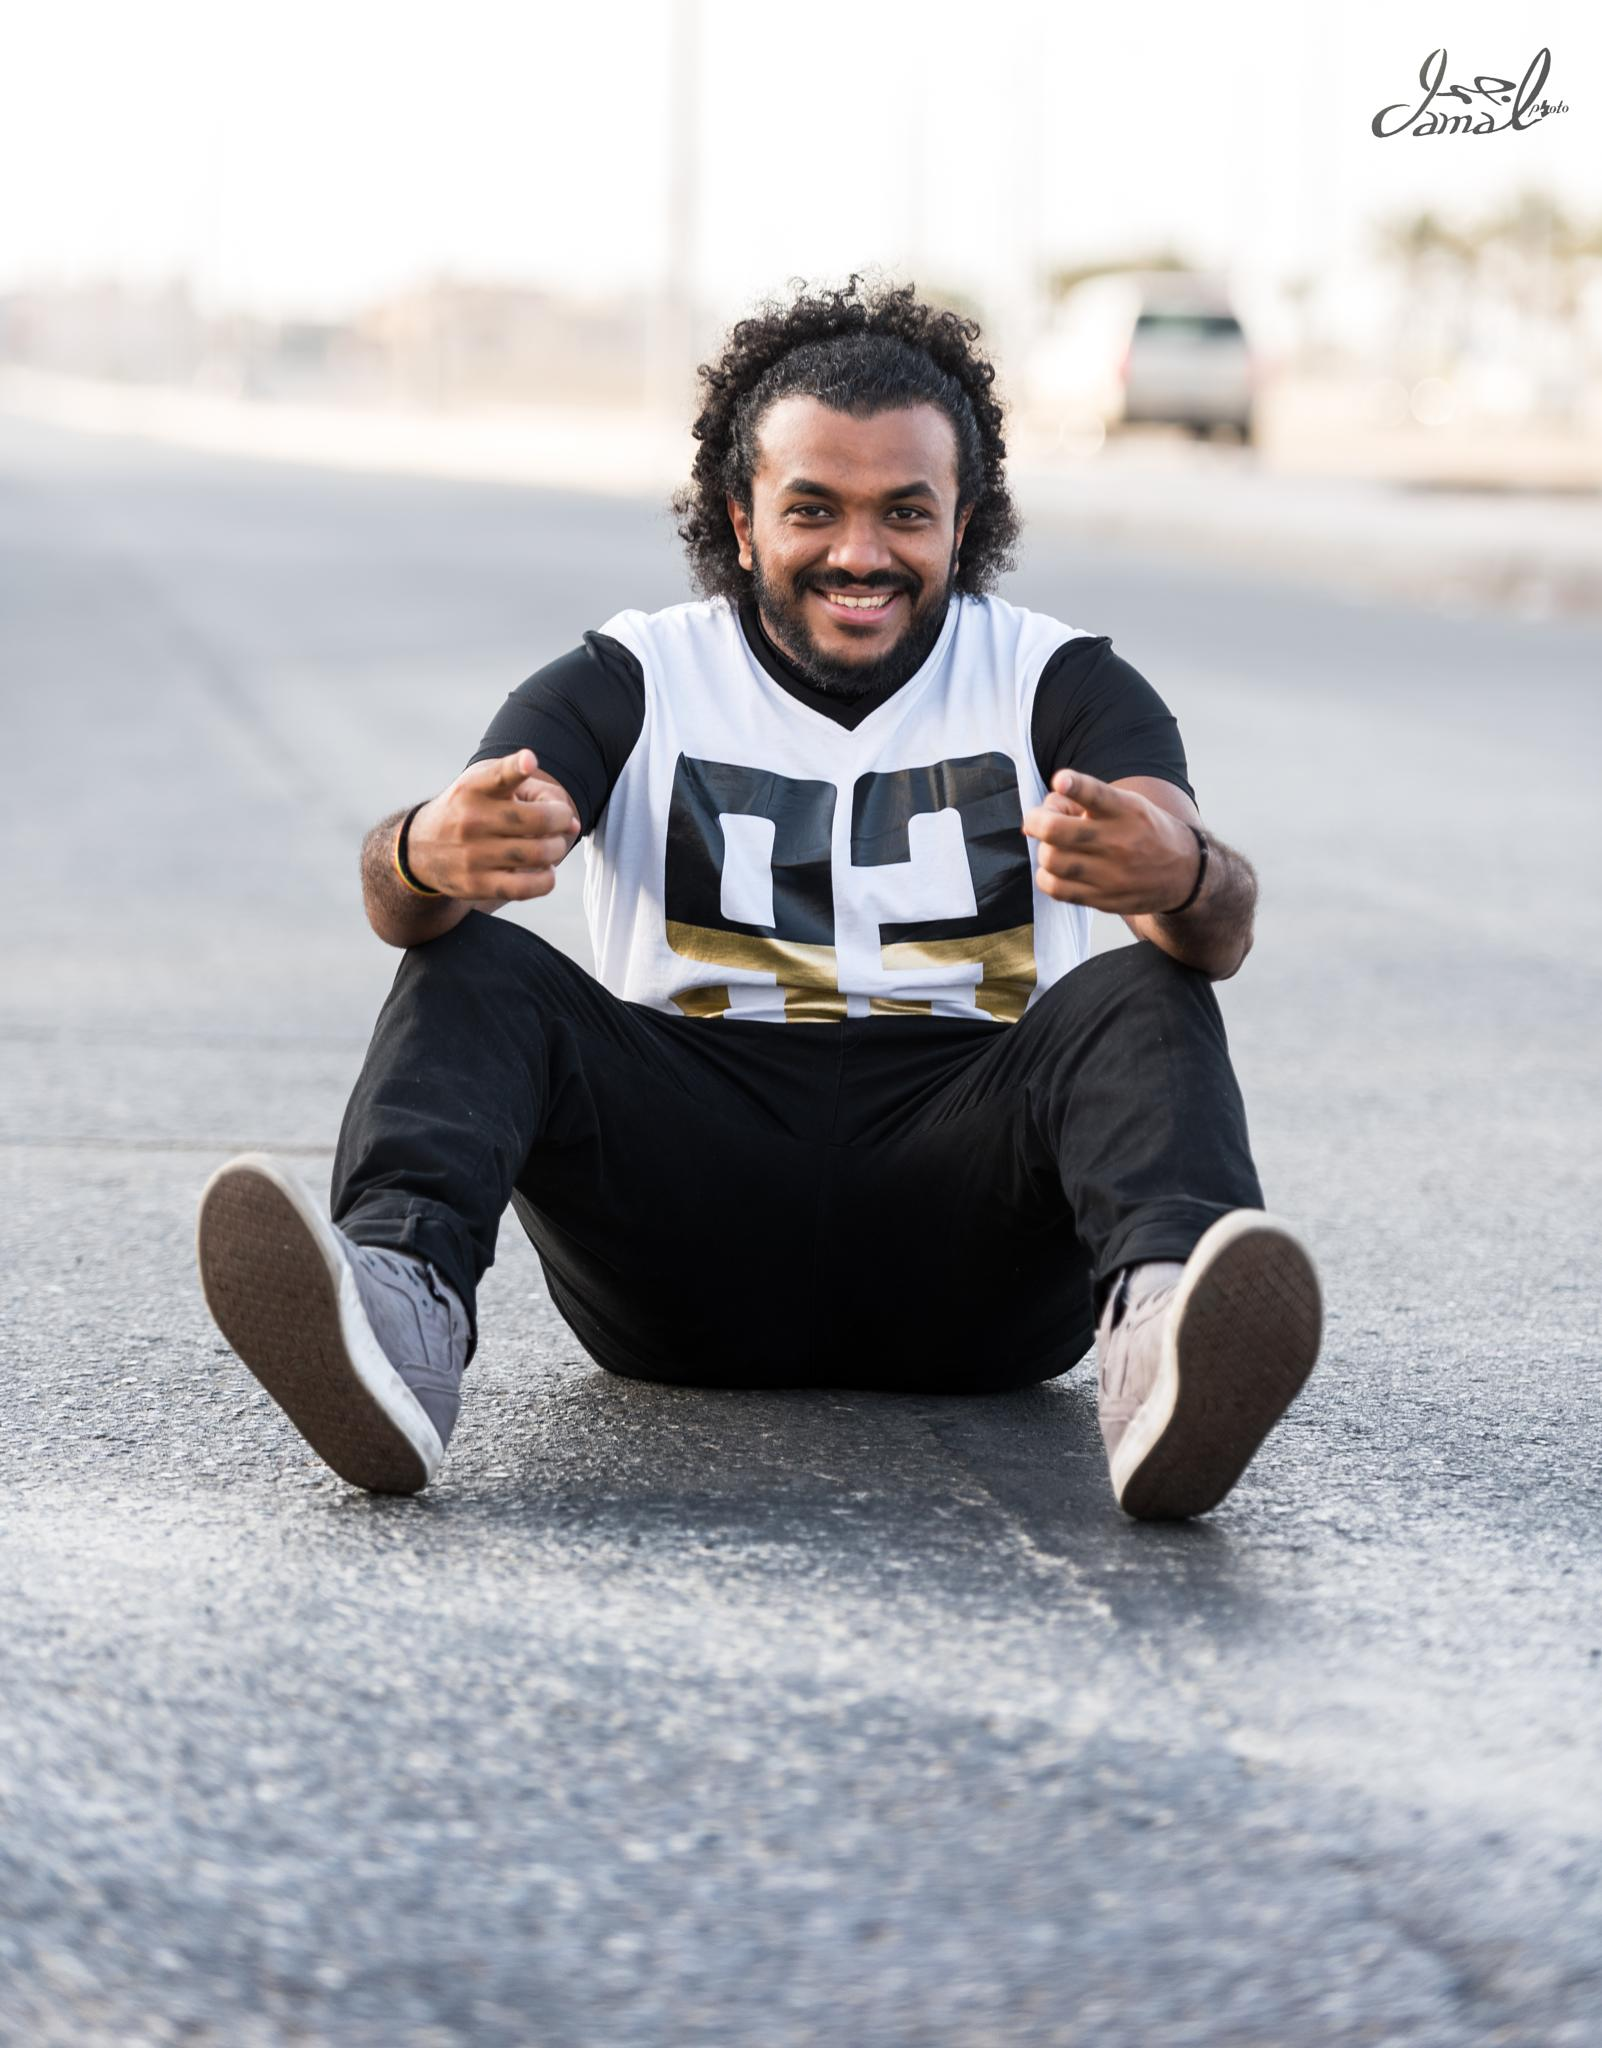 Fun in the middle of street by Jamal.Batawi